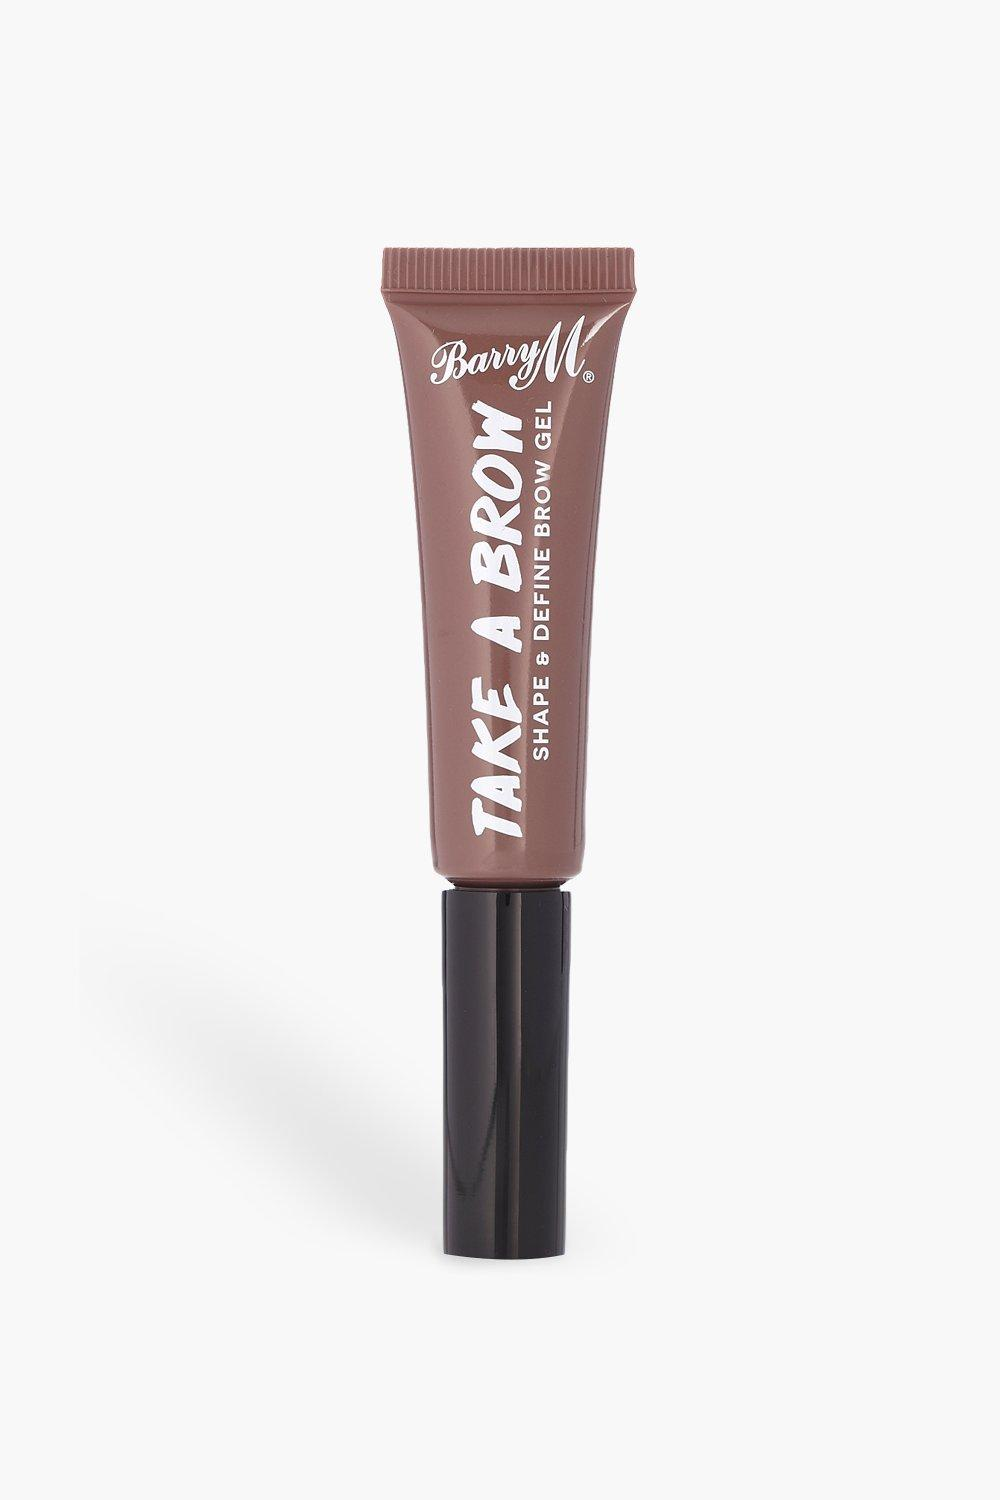 Barry M Womens Barry M Take A Brow Gel - Brown - One Size, Brown